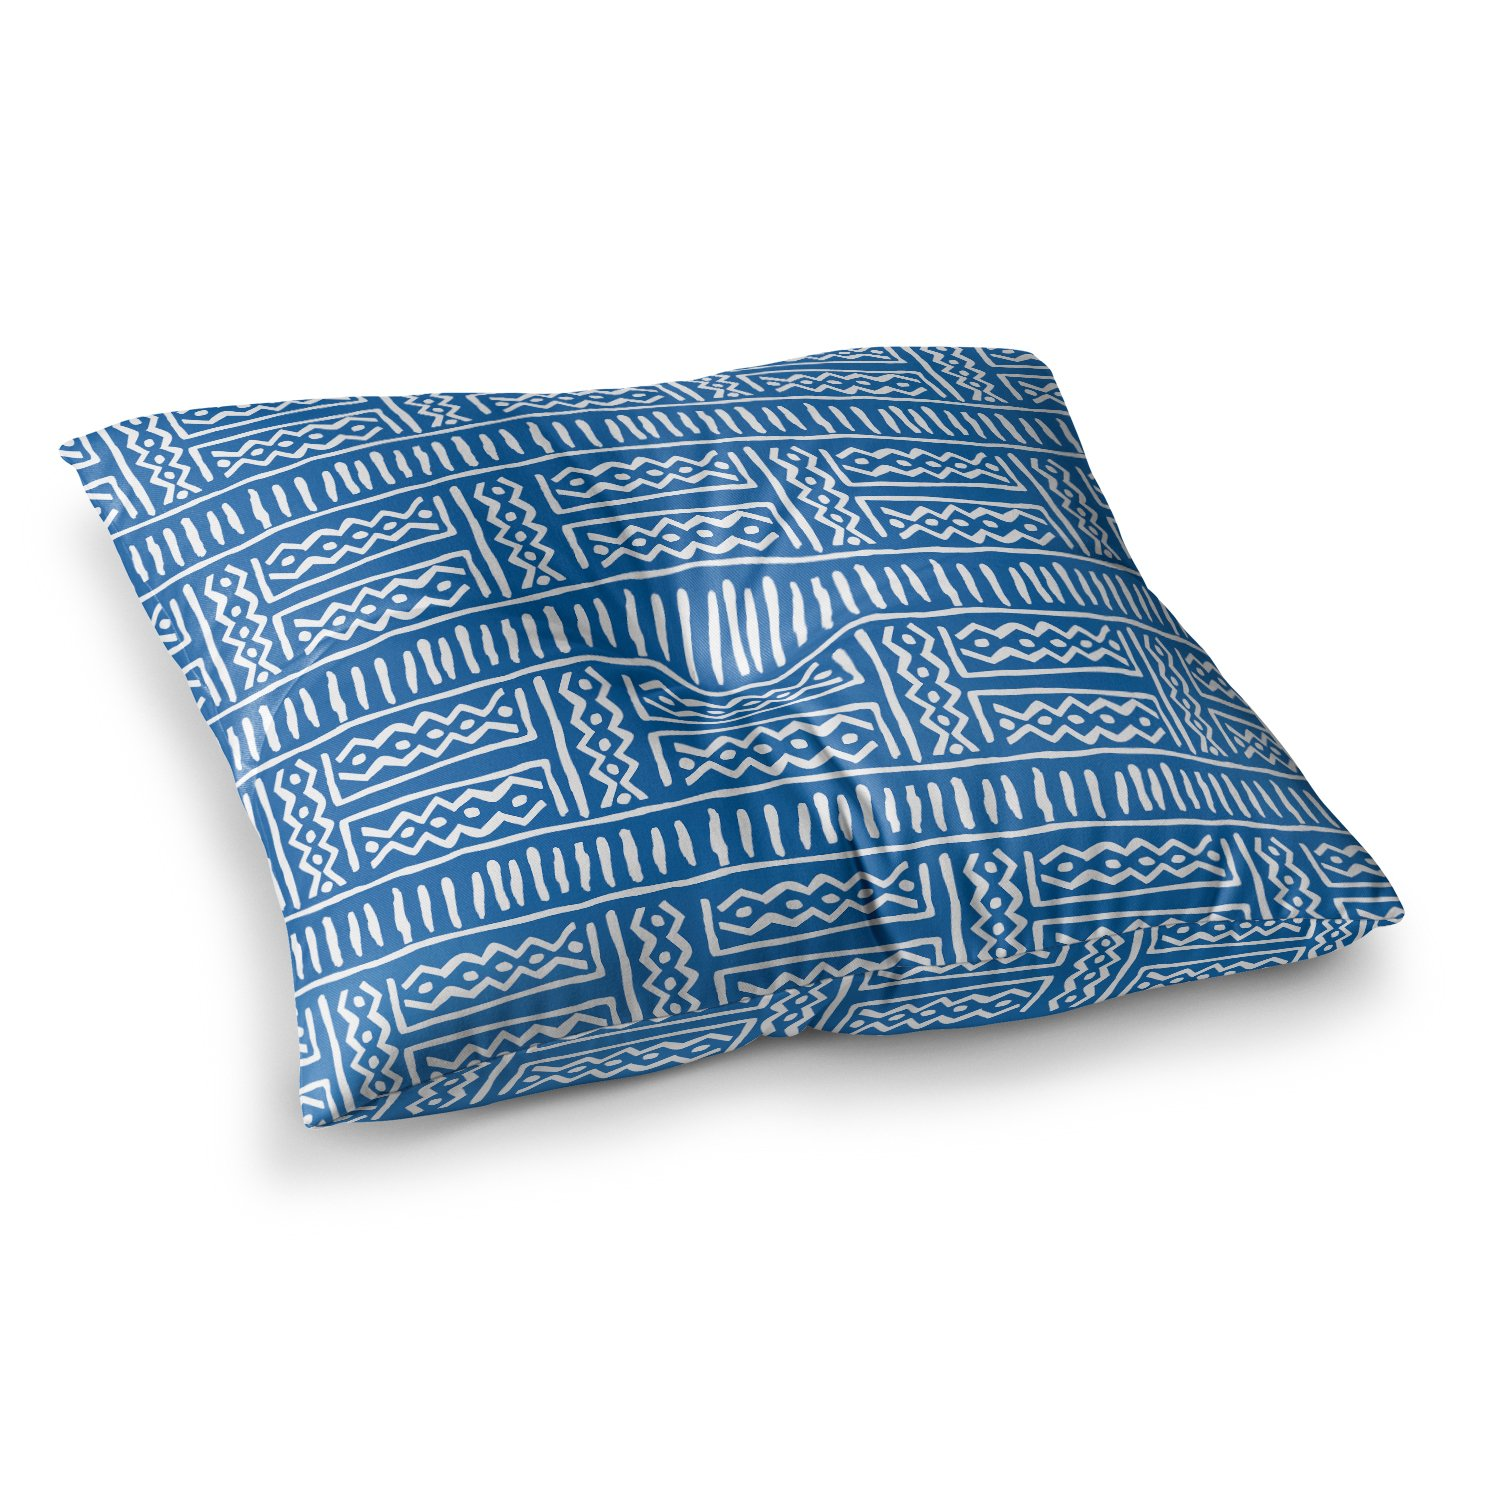 Kess InHouse Dan Sekanwagi Lines and Zigzags Blue Tribal, 26' x 26' Square Floor Pillow